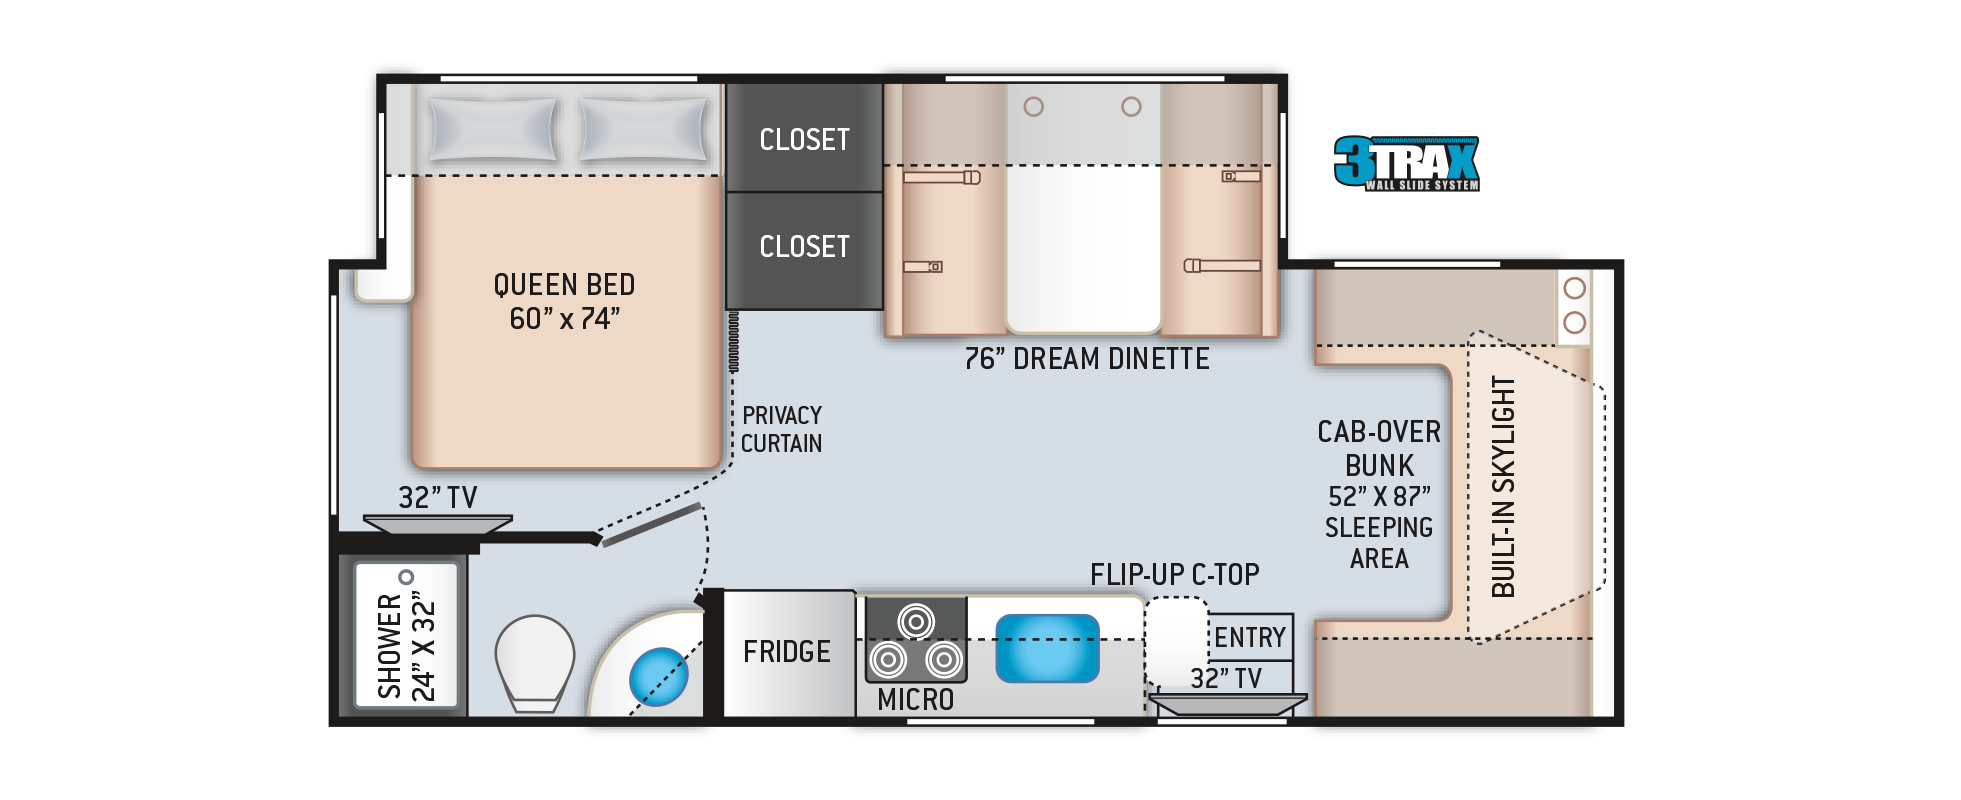 Quantum Sprinter RV Floor Plan KM24